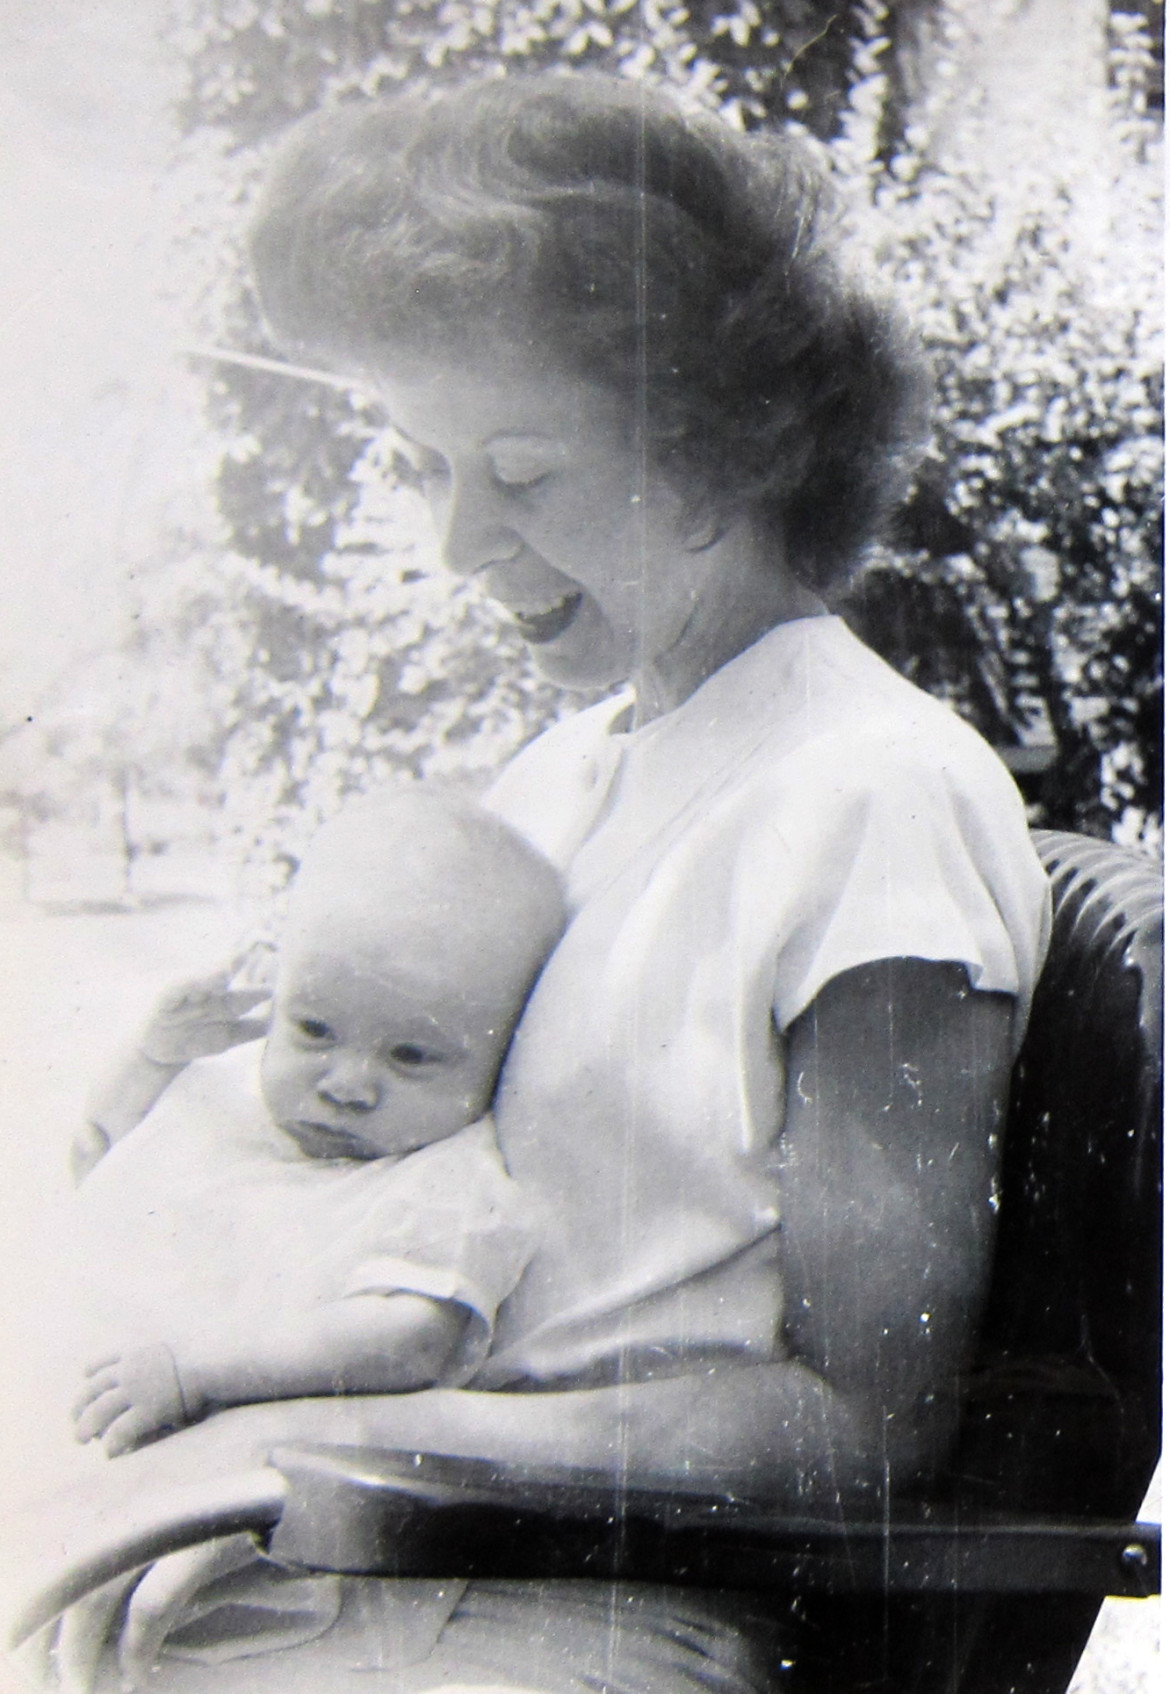 Marjorie and her baby.  From conversations I had with Matt Irwin, I believe her child was a little girl.